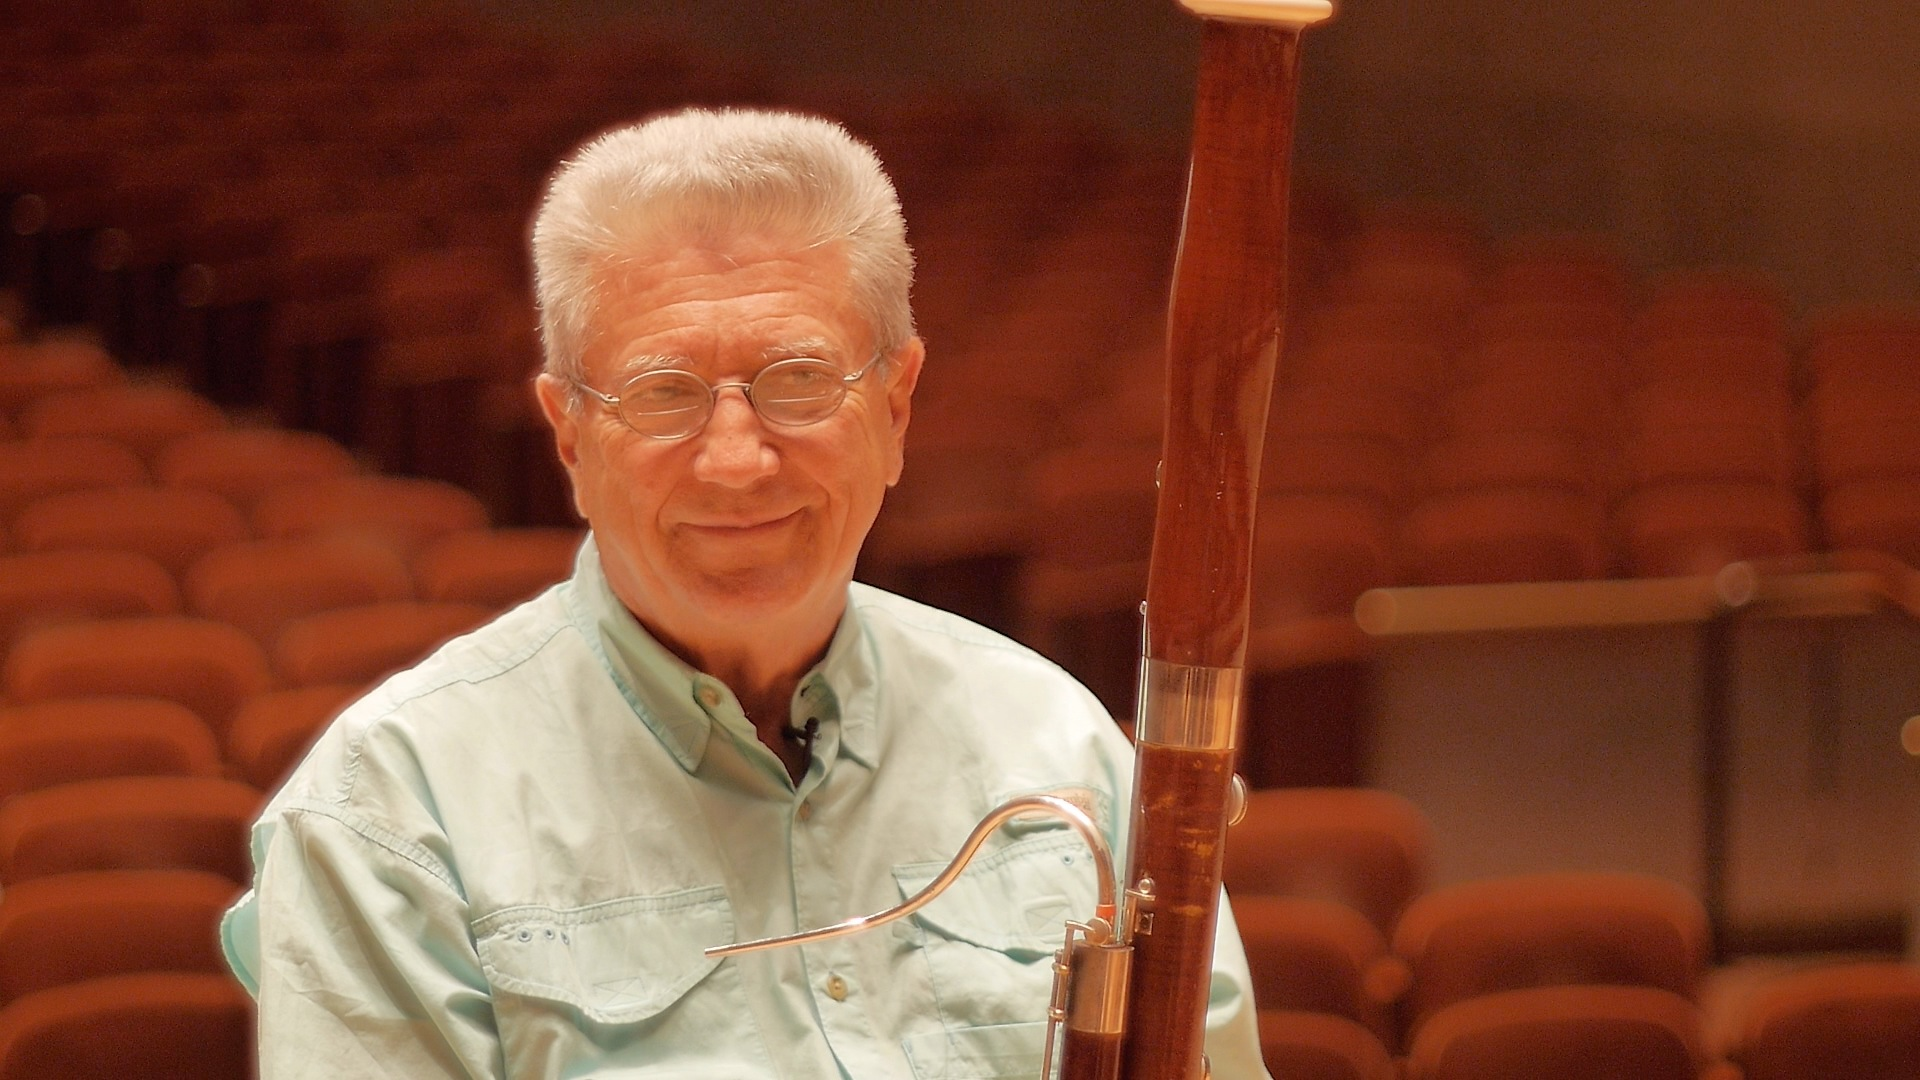 Wilfred Roberts has been principal bassoon of the Dallas Symphony since 1965. He graduated from Oberlin Conservatory and also studied at the Mozarteum Academy in Salzburg, Austria. Before beginning his career in the United States, he served as principal bassoon of the Camerata Academica Orchestra of Salzburg. He is on the faculty of Southern Methodist University and has served on the faculties of the University of Indiana, University of Michigan and University of North Texas schools of music, and has performed in major summer festivals throughout his career.